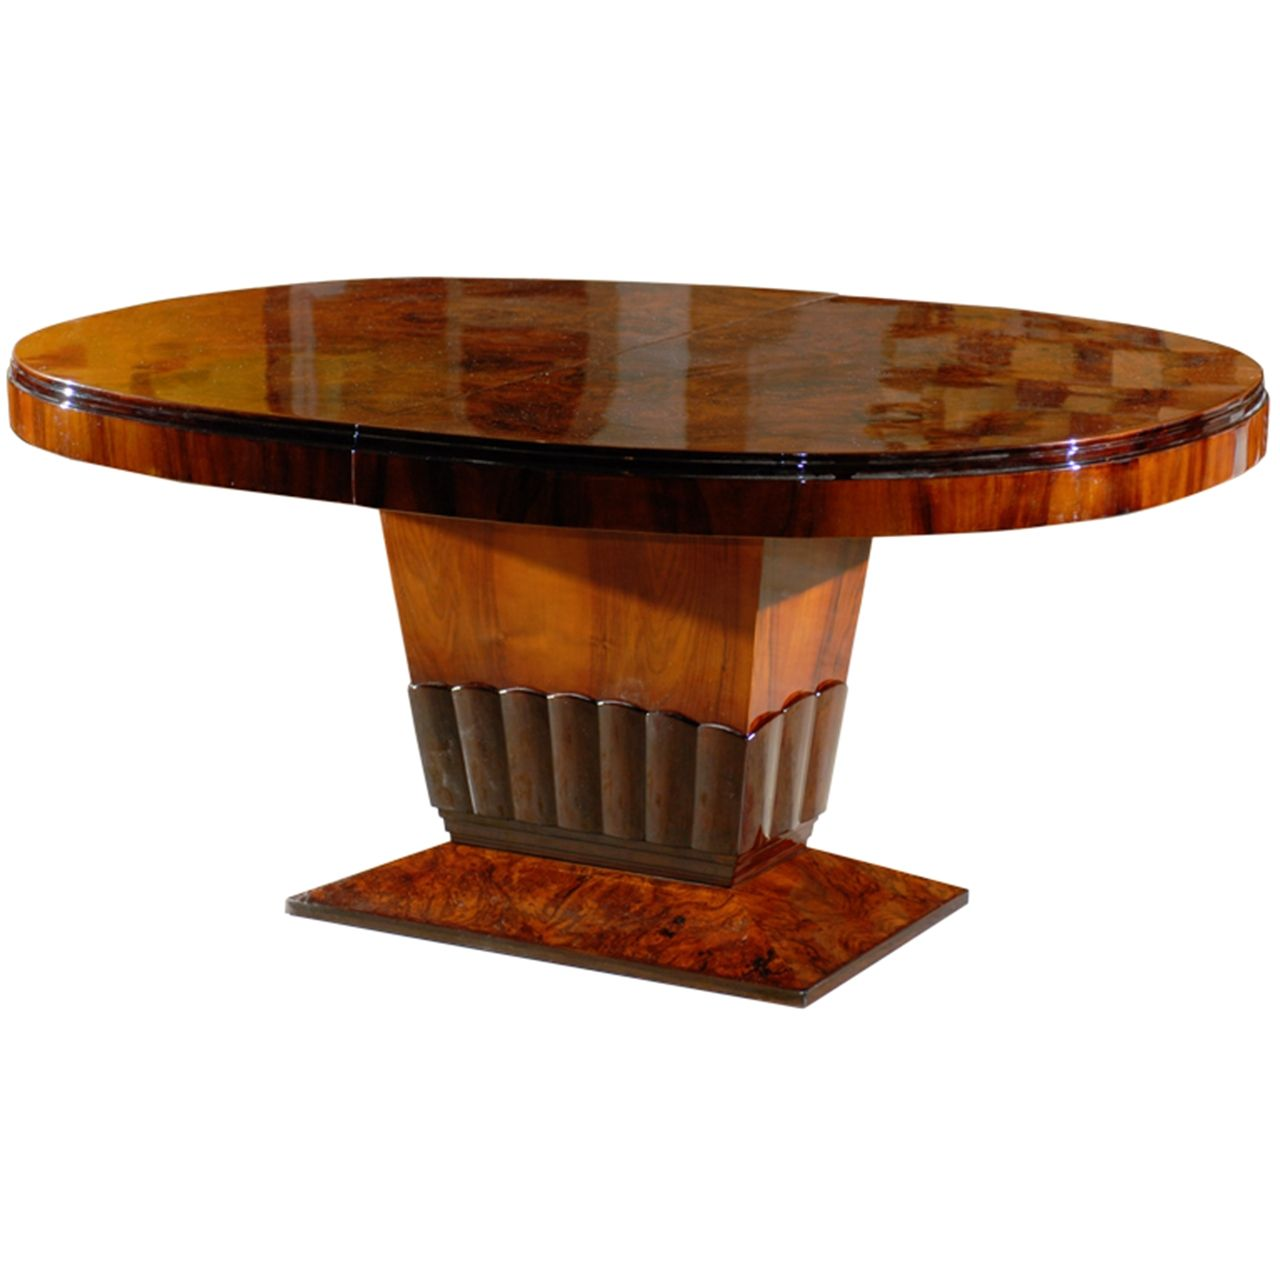 Modern Deco Art Deco Oval Dining Table With Tulip Base Art Deco